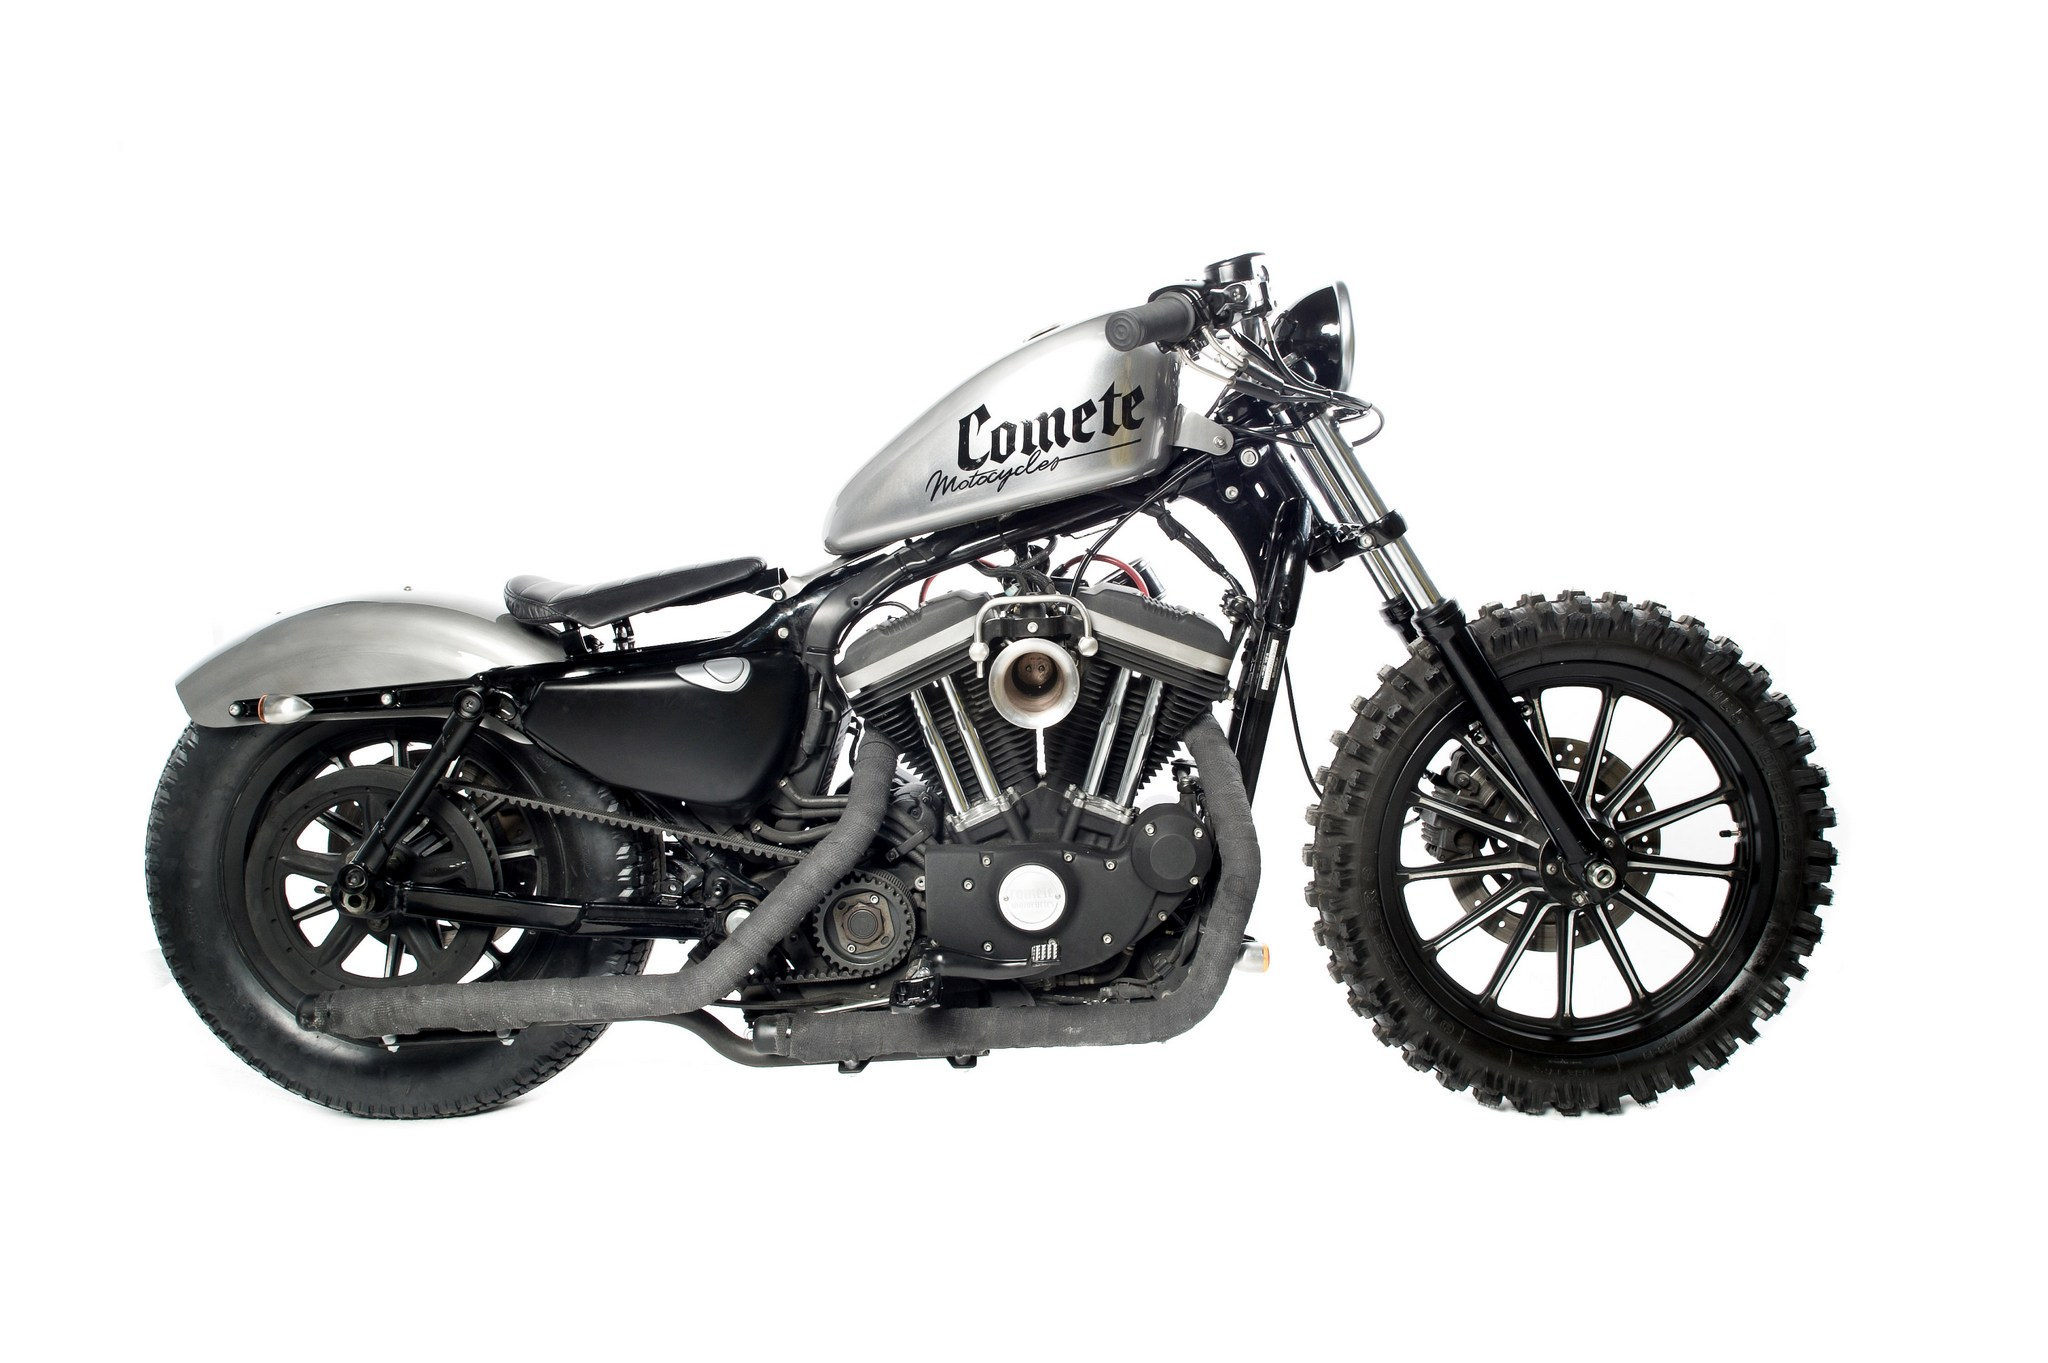 Lumberjack Sportster A Harley Scrambler From Comete Motocycles Autoevolution